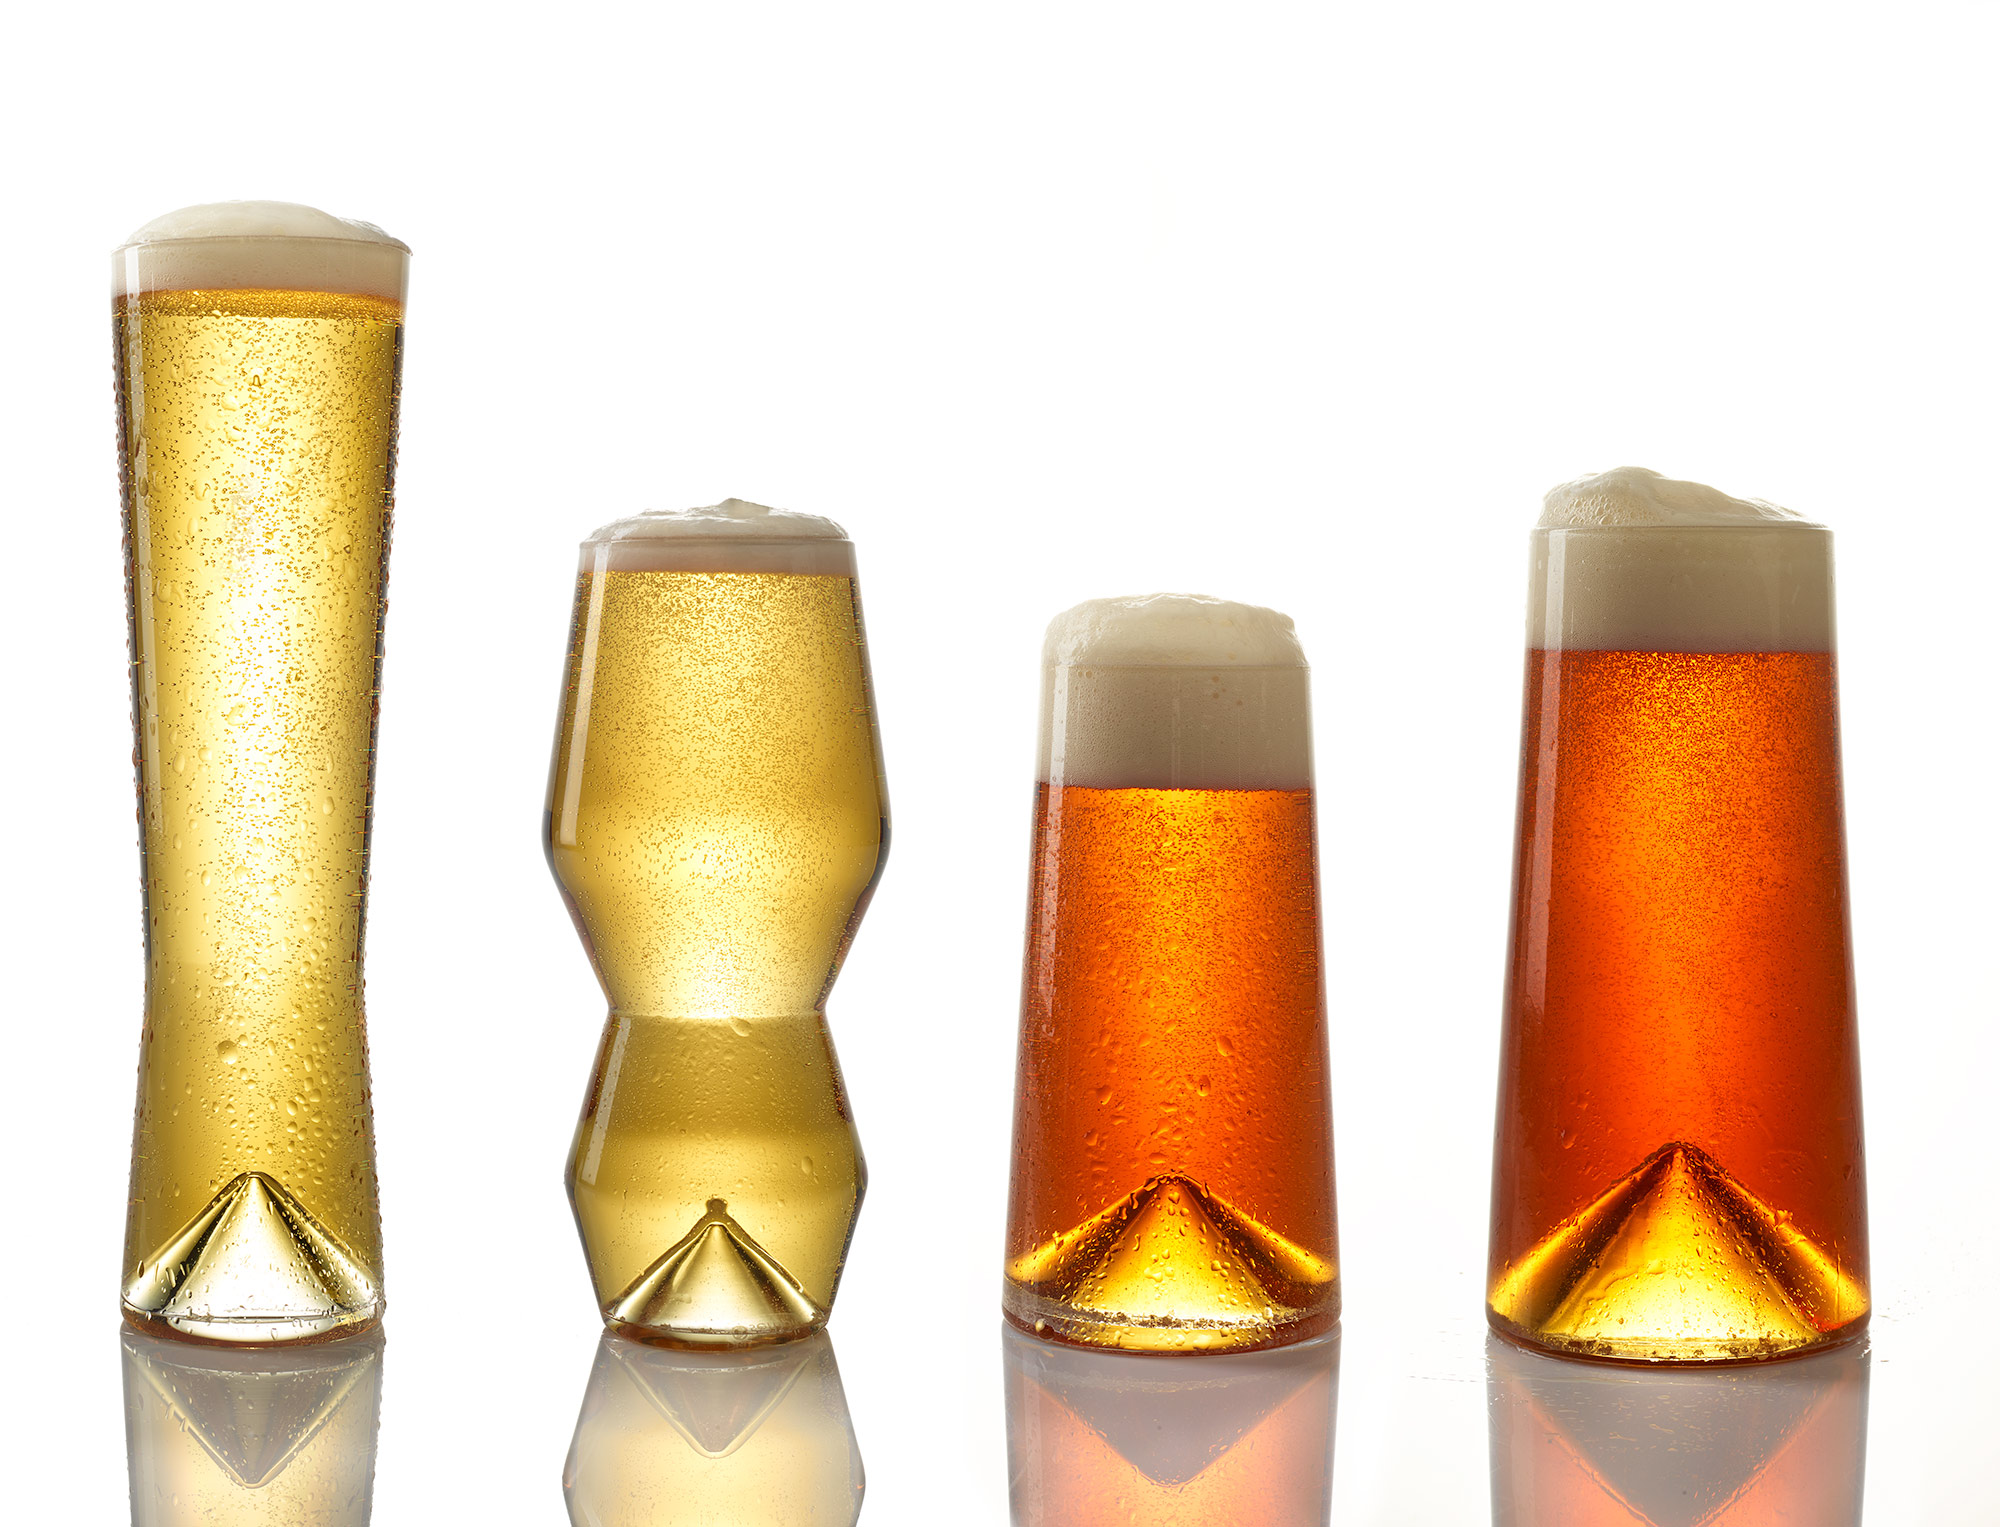 Beer glasses- Beer- Craft beer- Henrique Du Tiel